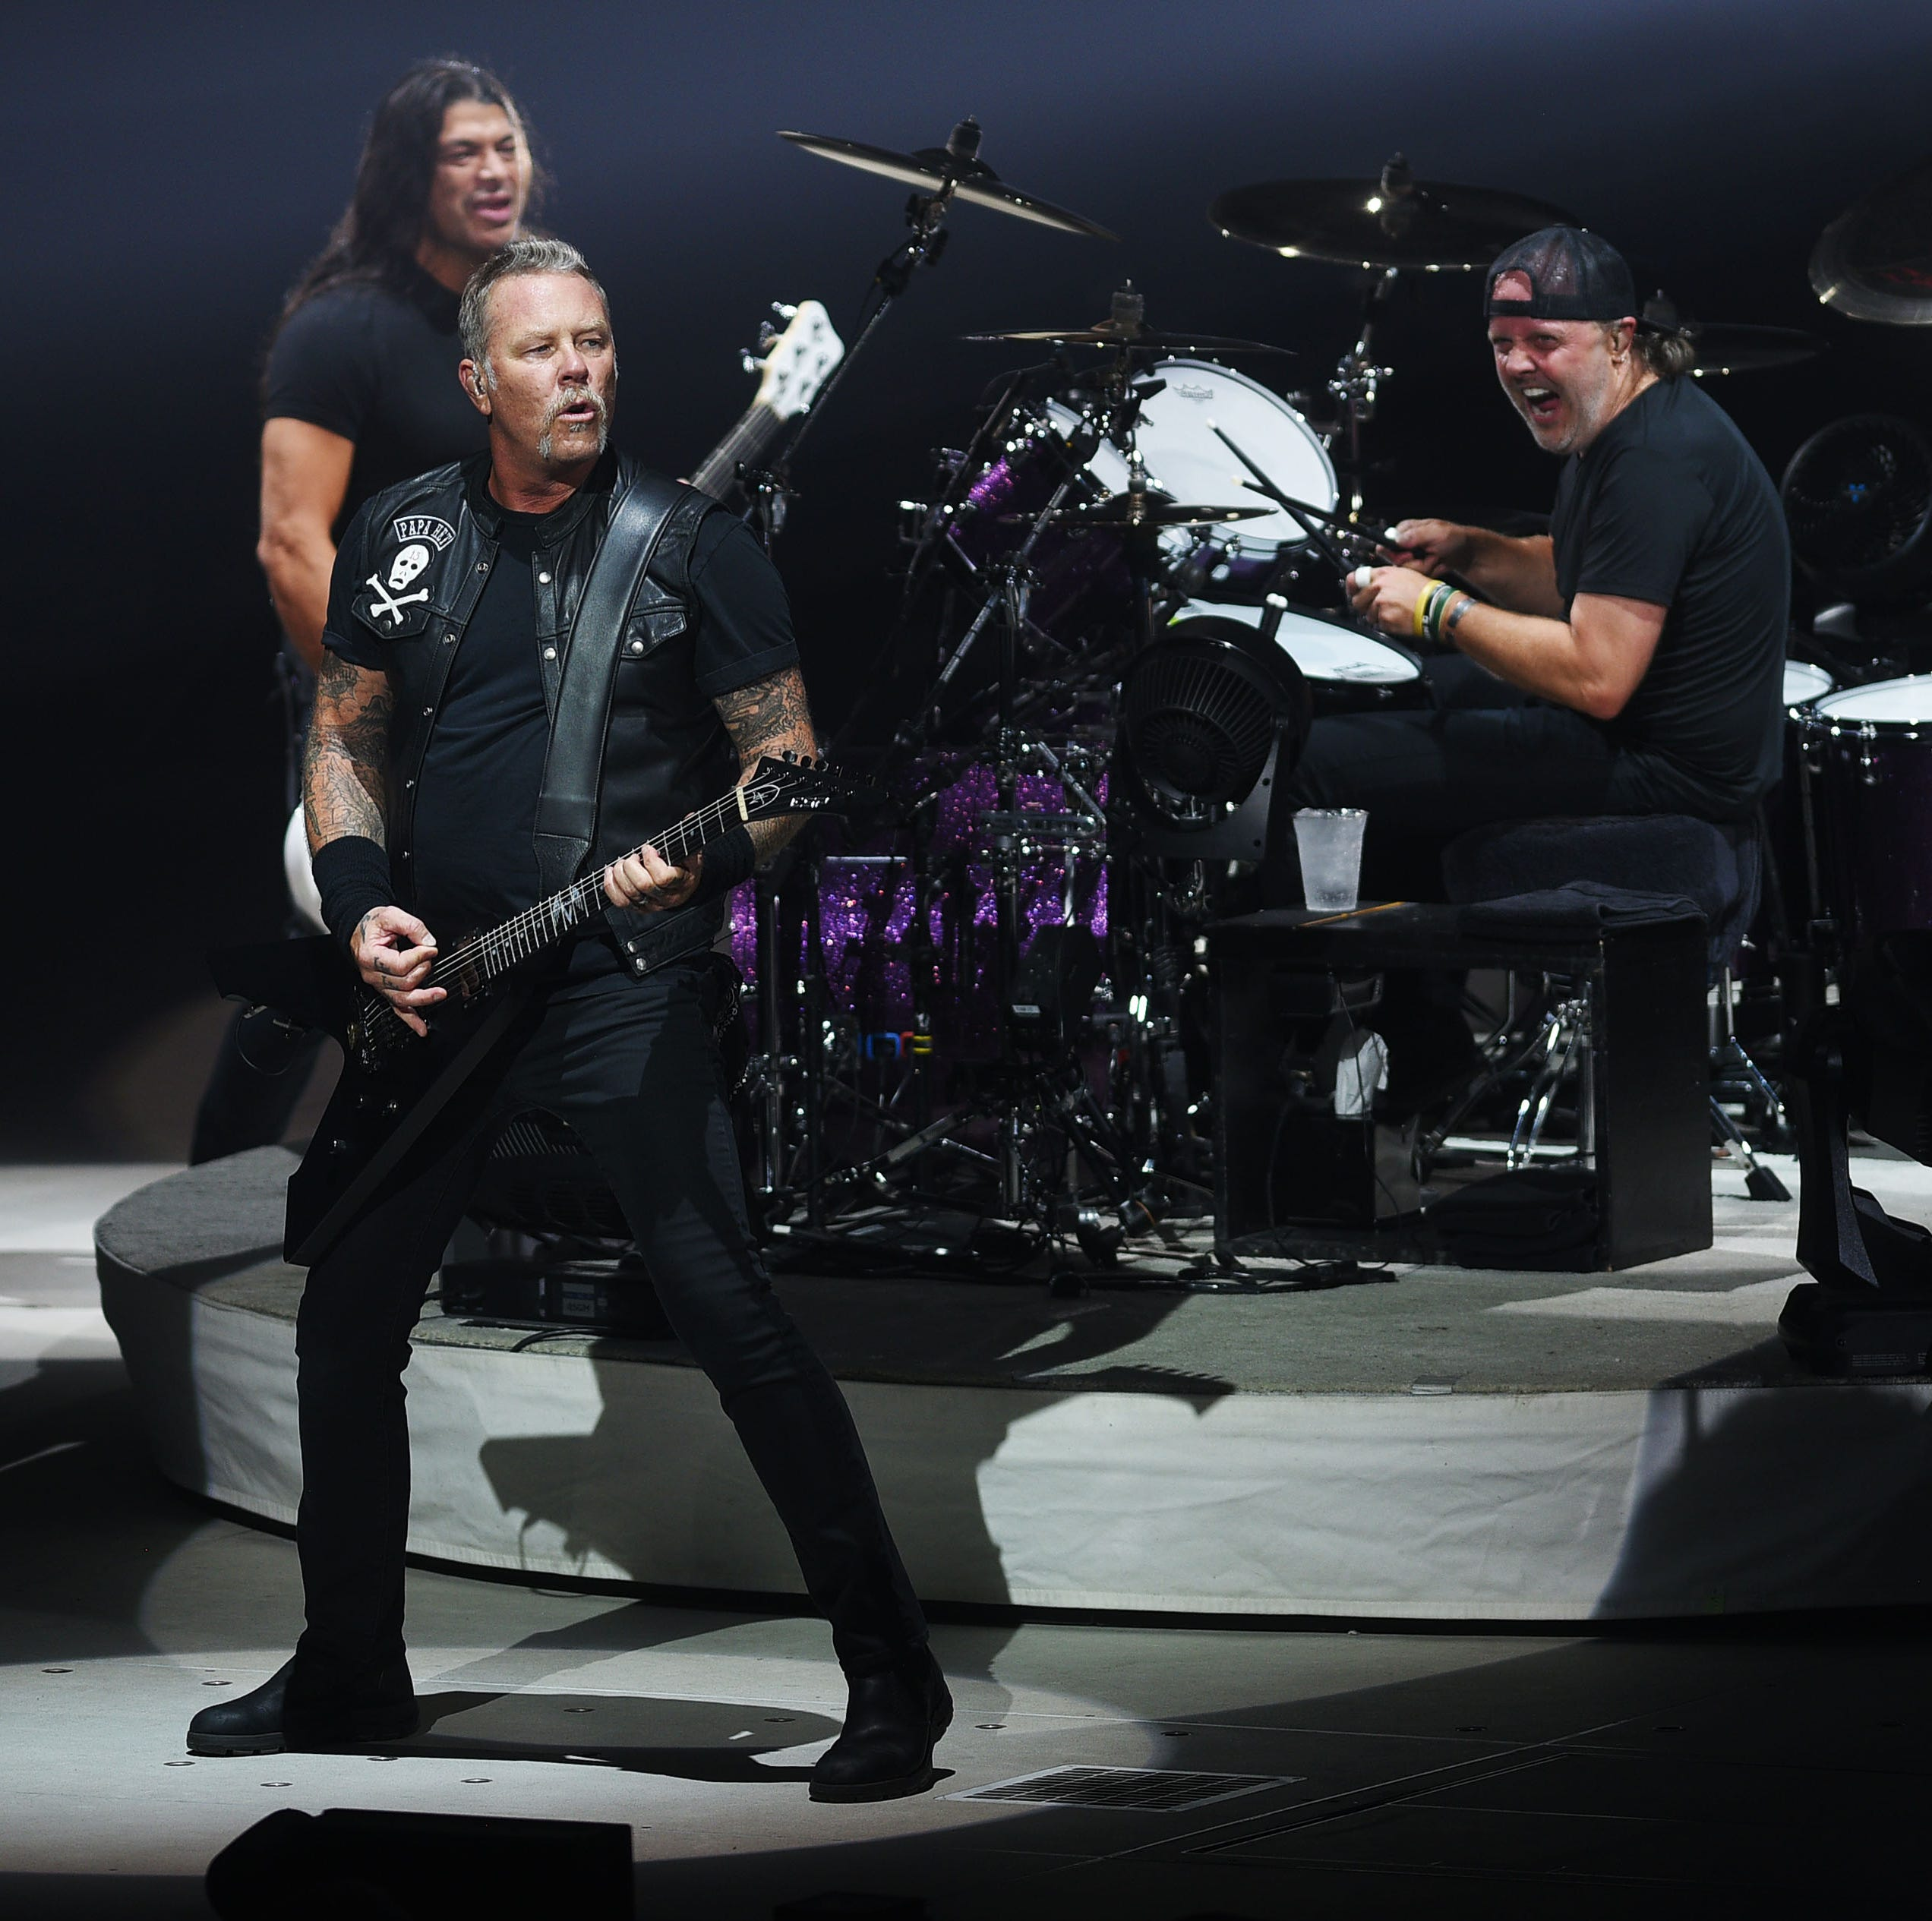 Review: Metallica brings thrilling rock spectacle to Sioux Falls